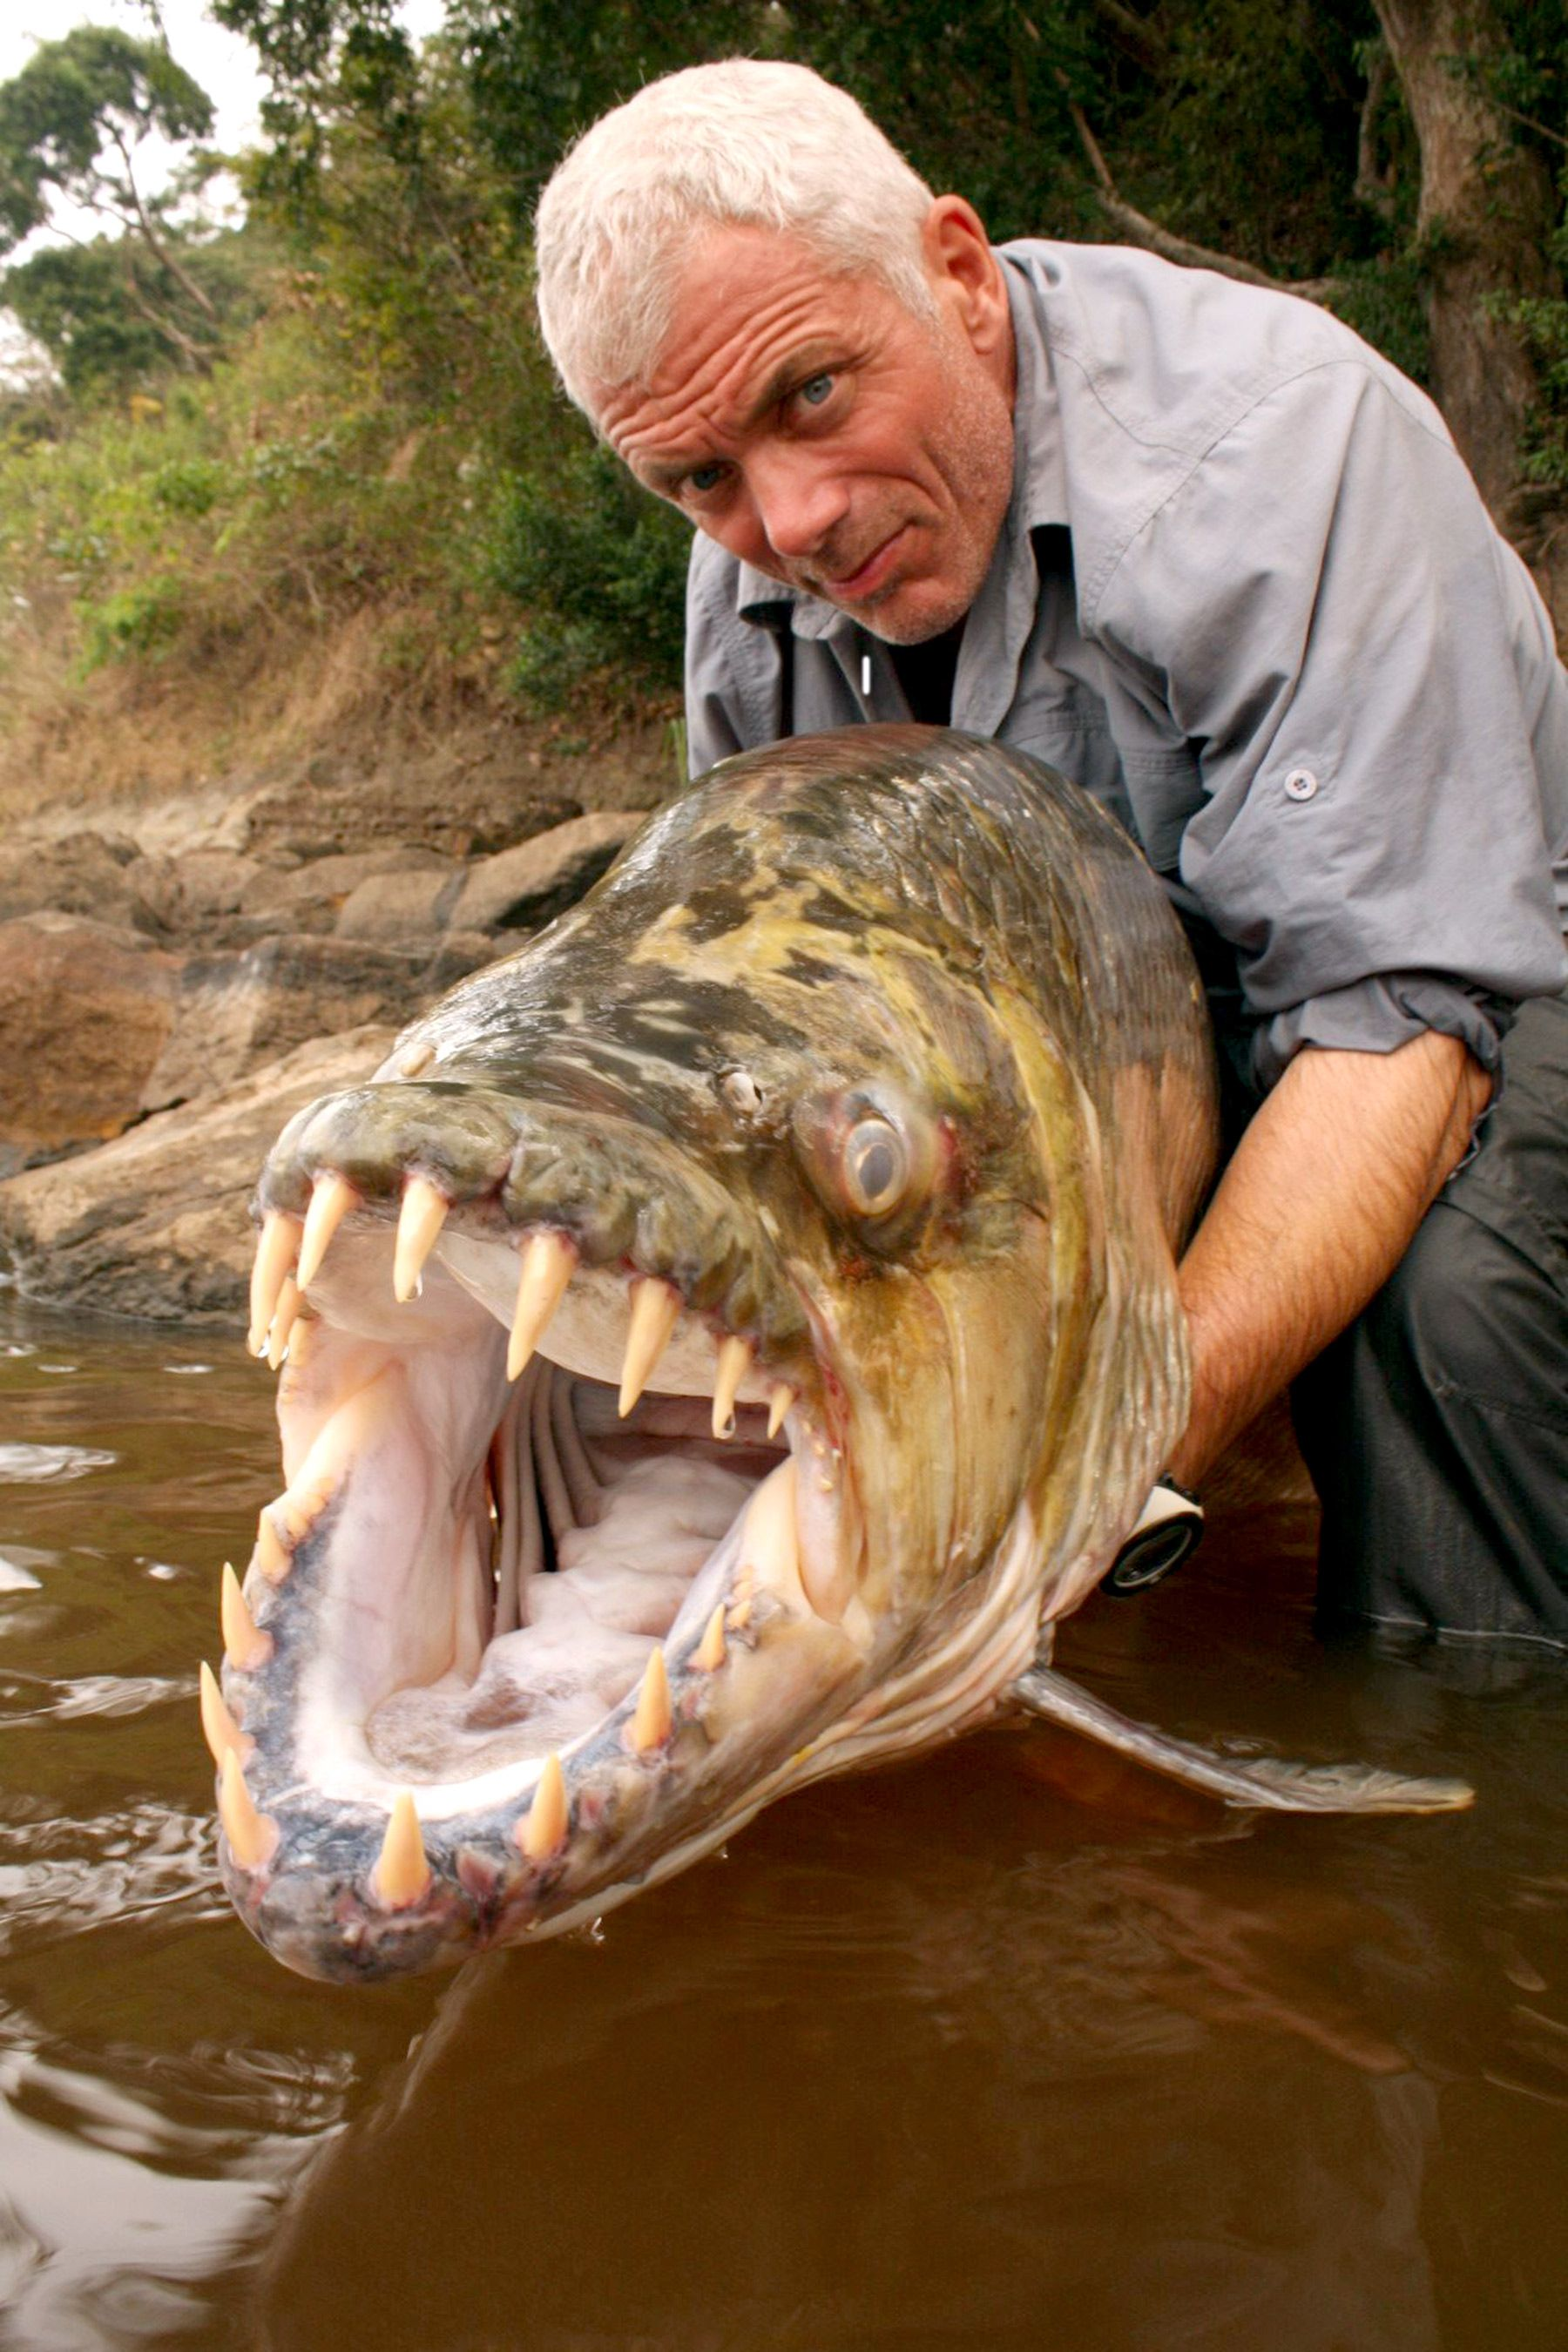 river monsters host shares his 5 closest brushes with death